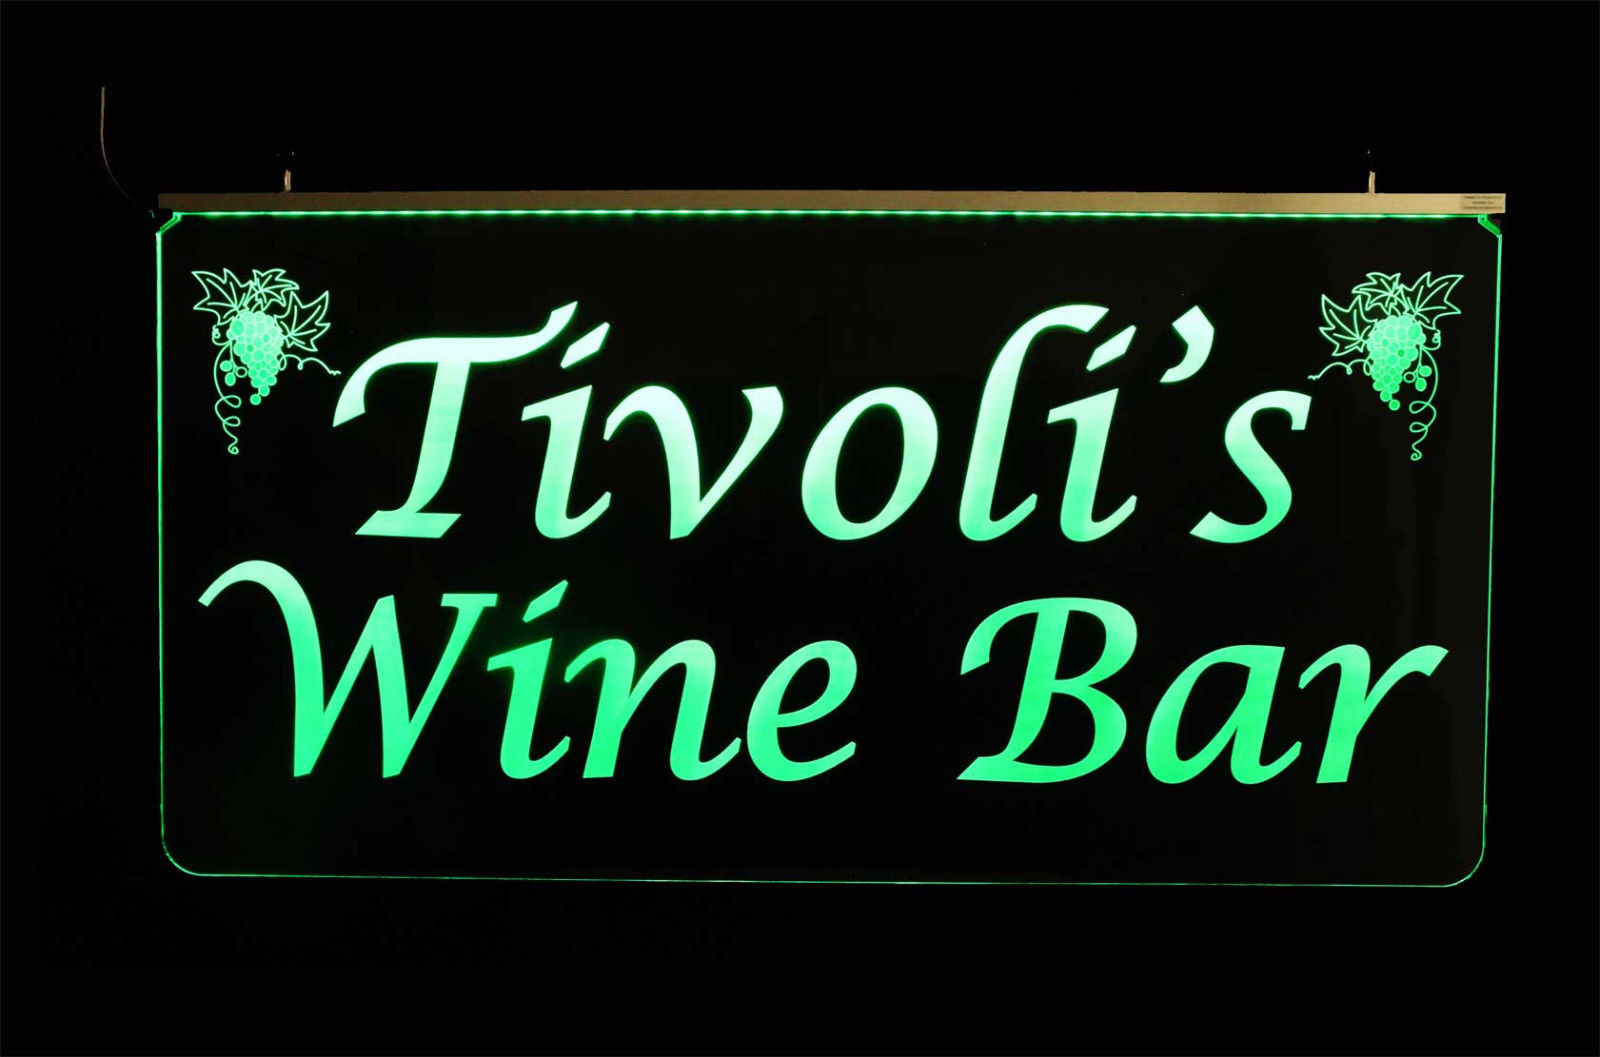 Personalized 2 Sided LED Laser Engraved Sign image 3